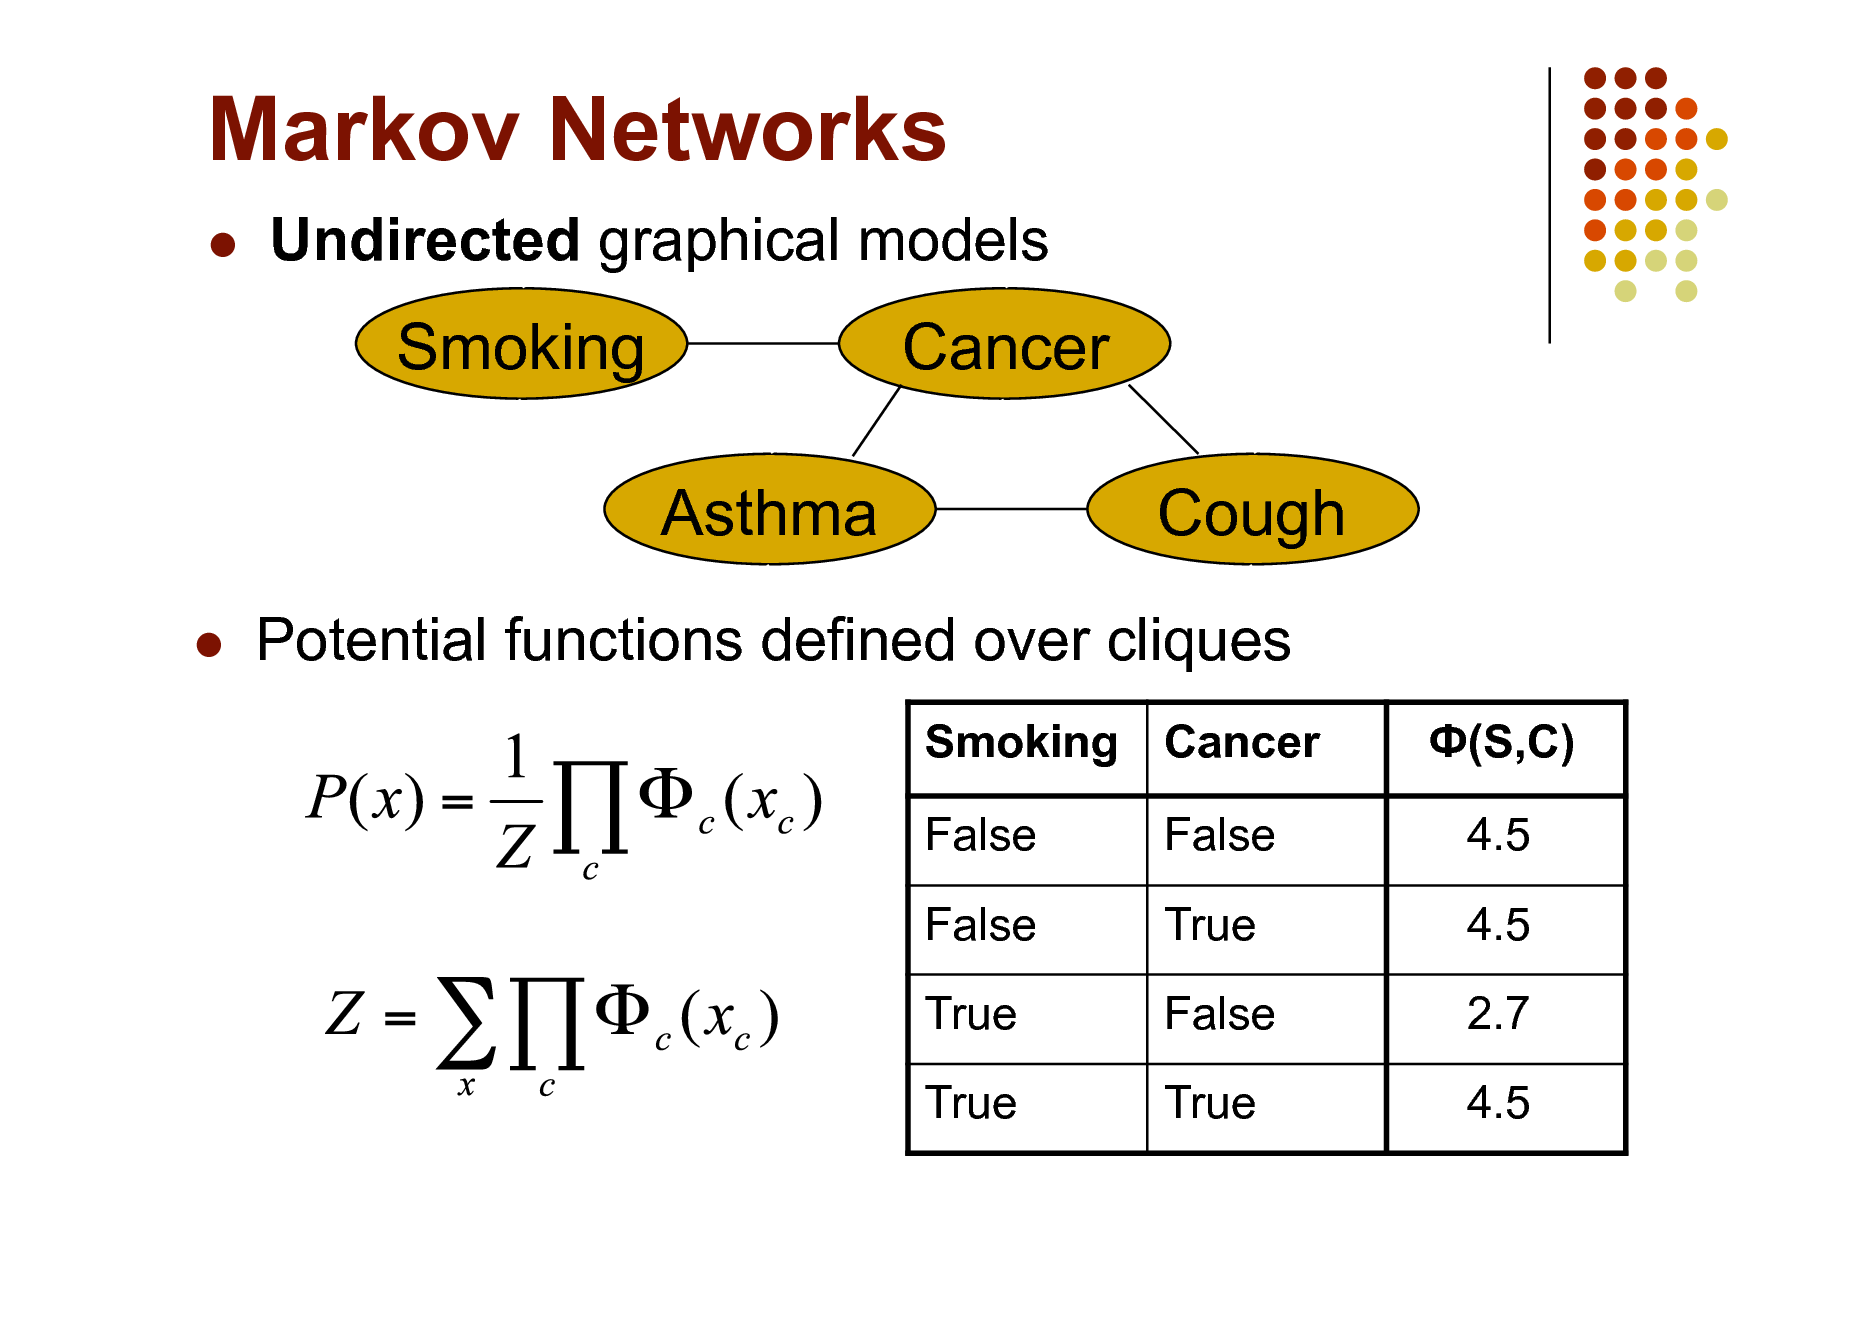 Slide: Markov Networks   Undirected graphical models  Smoking Asthma   Cancer Cough  Potential functions defined over cliques Smoking Cancer False False True True False True False True (S,C) 4.5 4.5 2.7 4.5